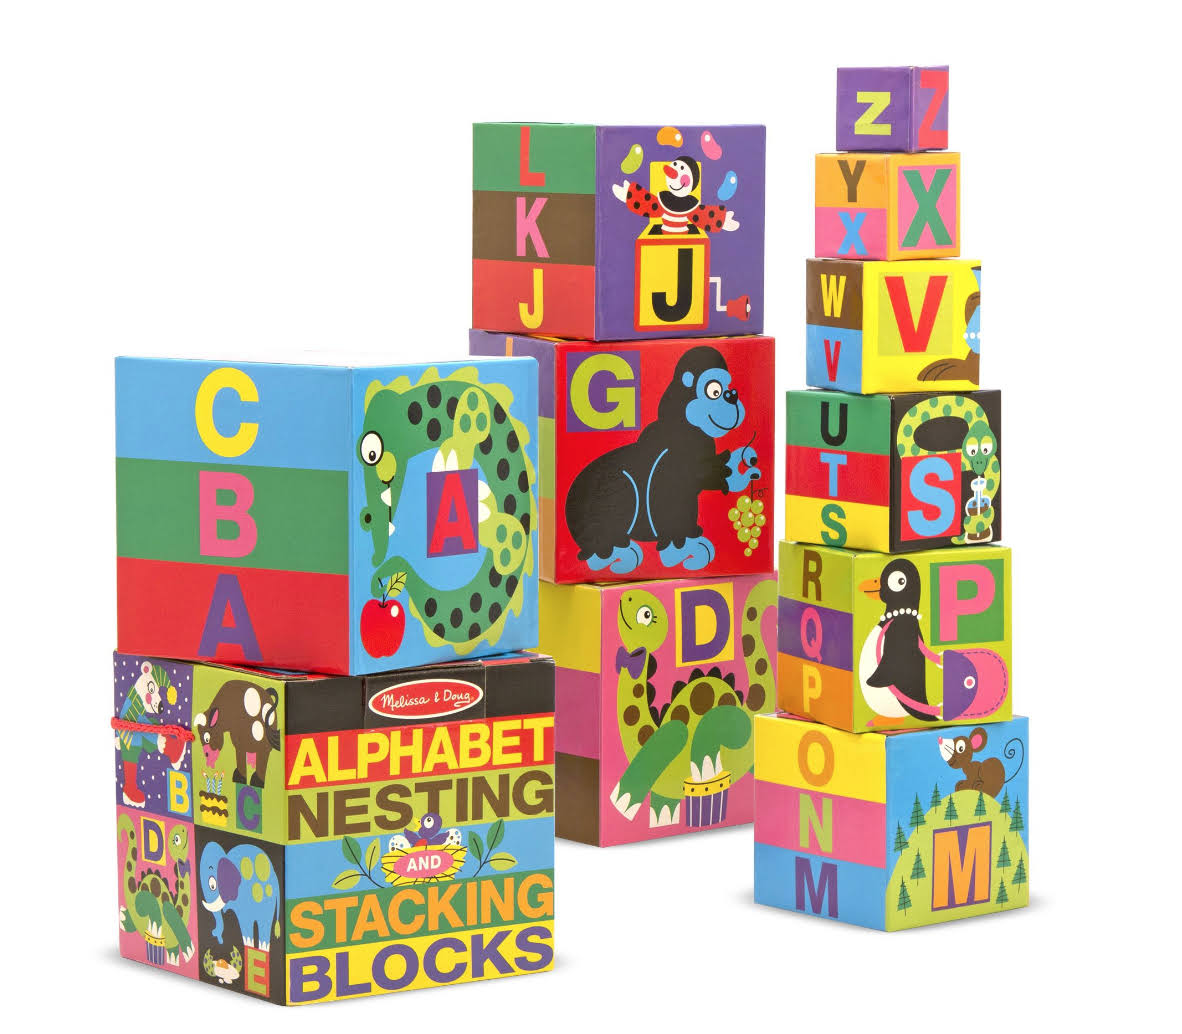 Melissa & Doug Alphabet Nesting and Stacking Blocks, Sturdy